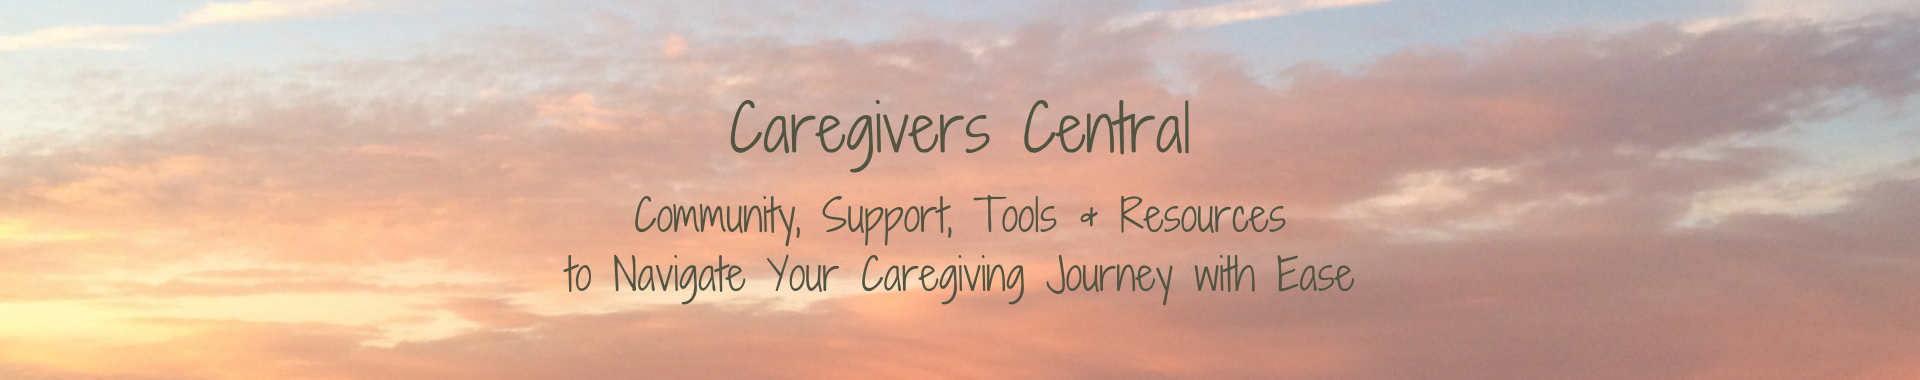 Caregivers Central